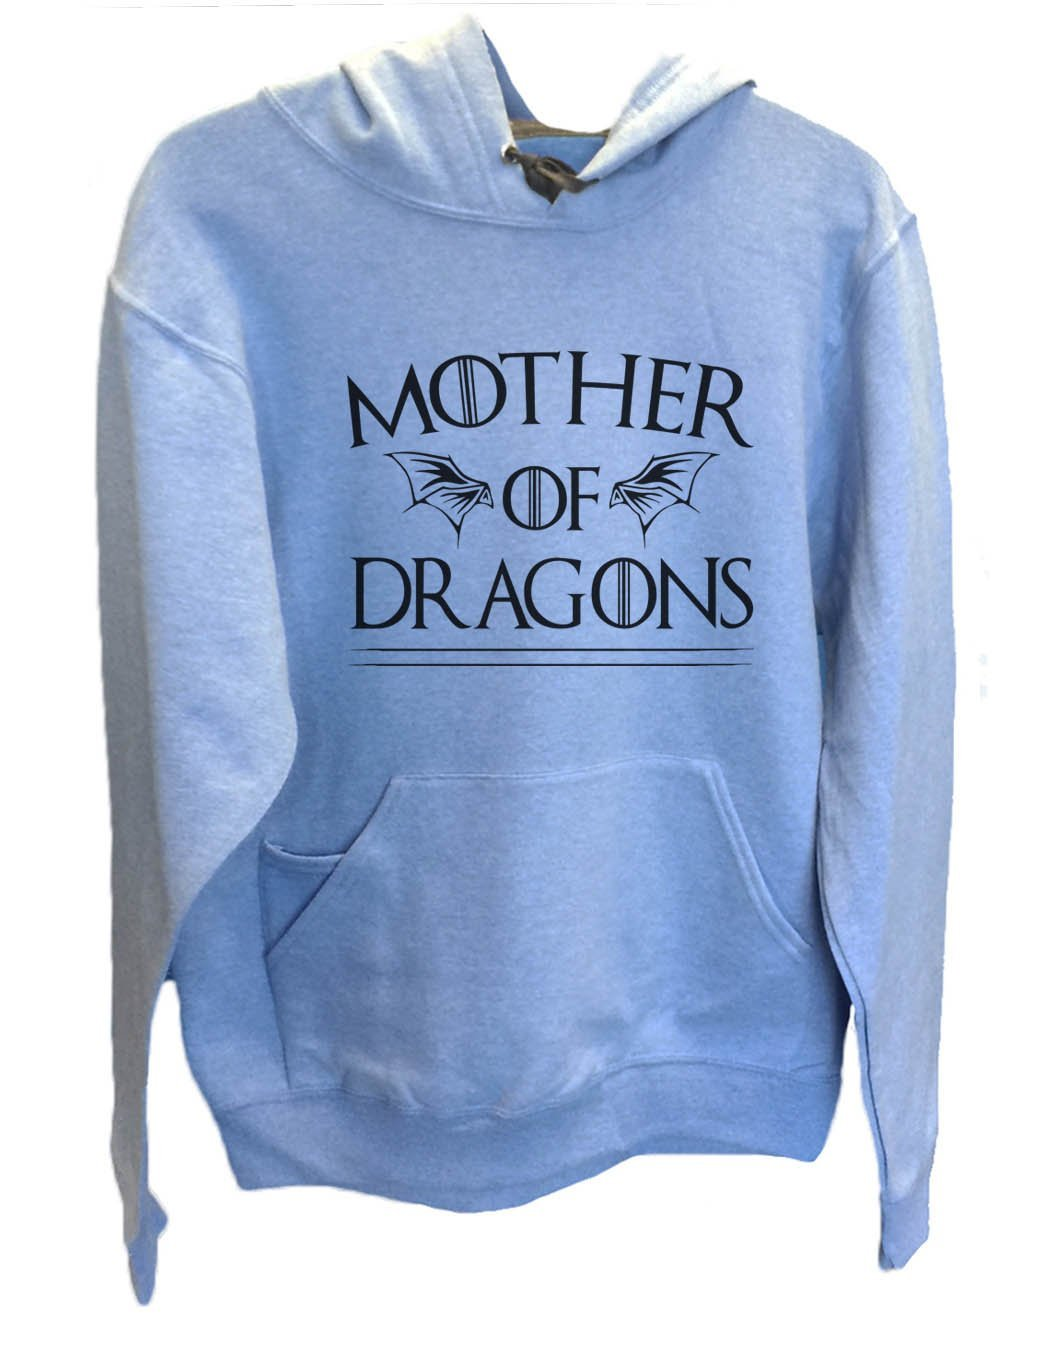 UNISEX HOODIE - Mother Of Dragons Game Of Thrones - FUNNY MENS AND WOMENS HOODED SWEATSHIRTS - 2282 Funny Shirt Small / North Carolina Blue